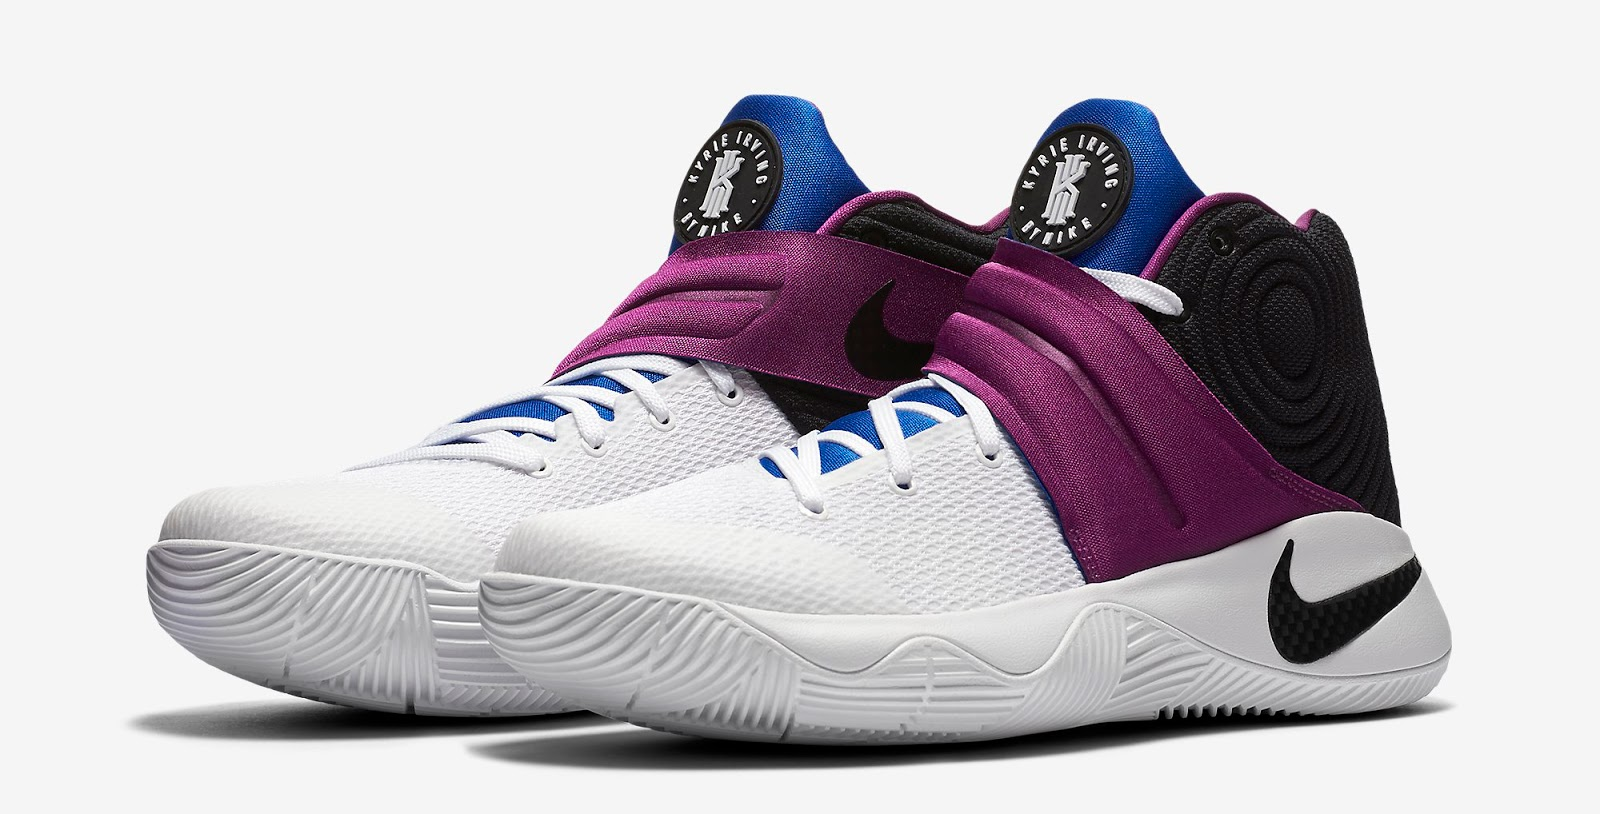 new arrival e2b75 be5da Inspired by the classic Nike Air Flight Huarache, this Nike Kyrie 2 is  known as the